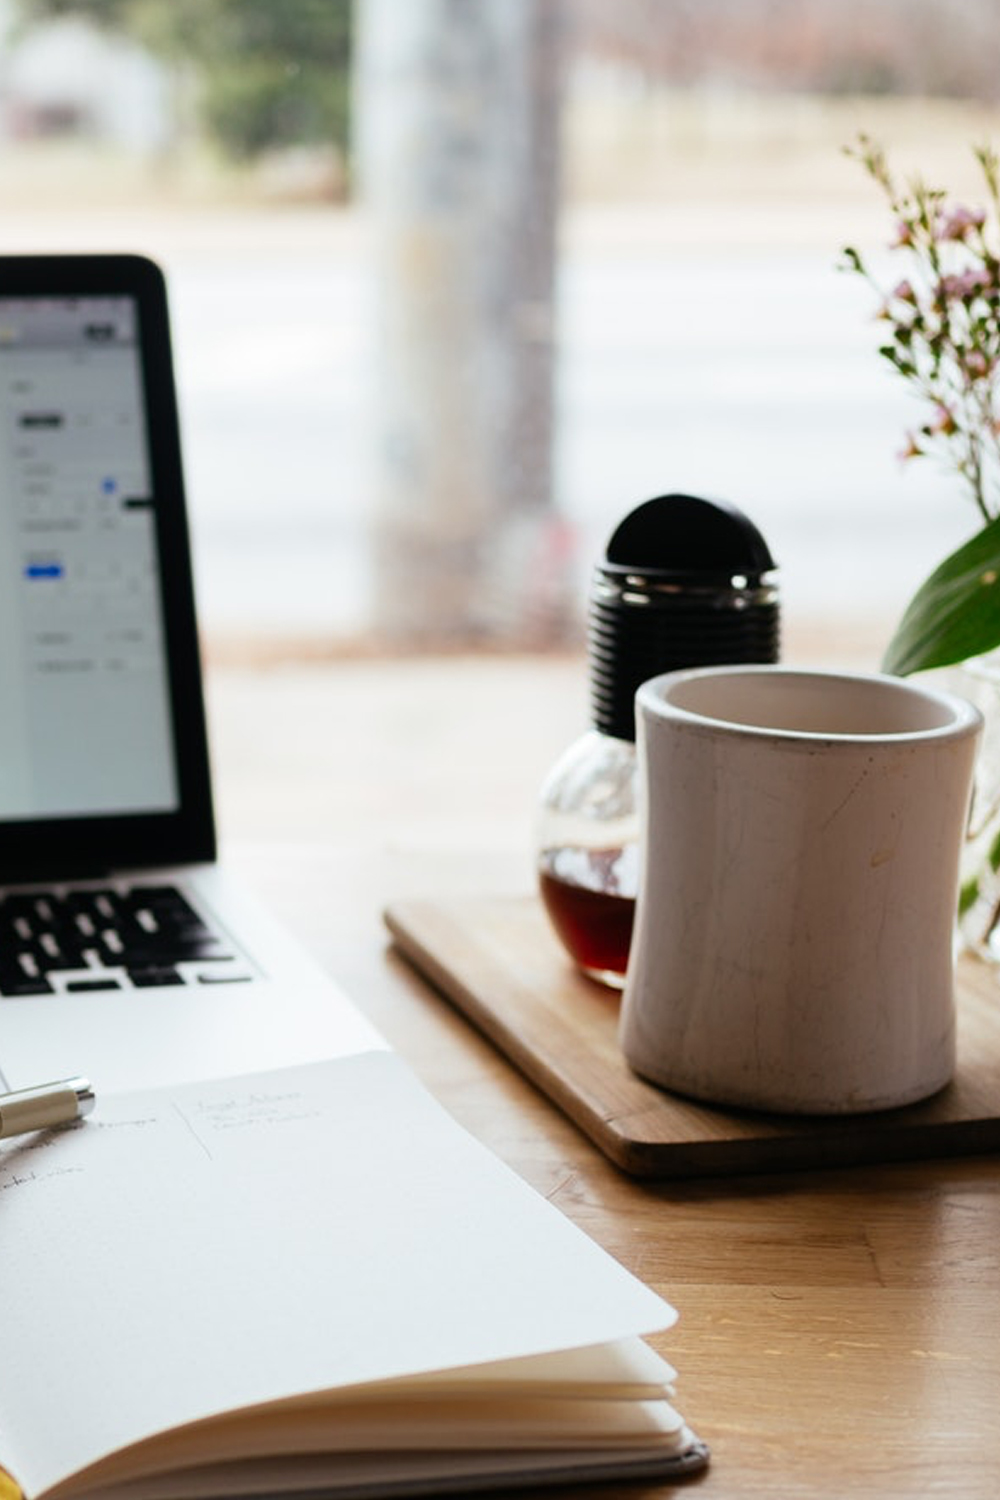 Four Reasons Why You Need a Side Hustle in 2019